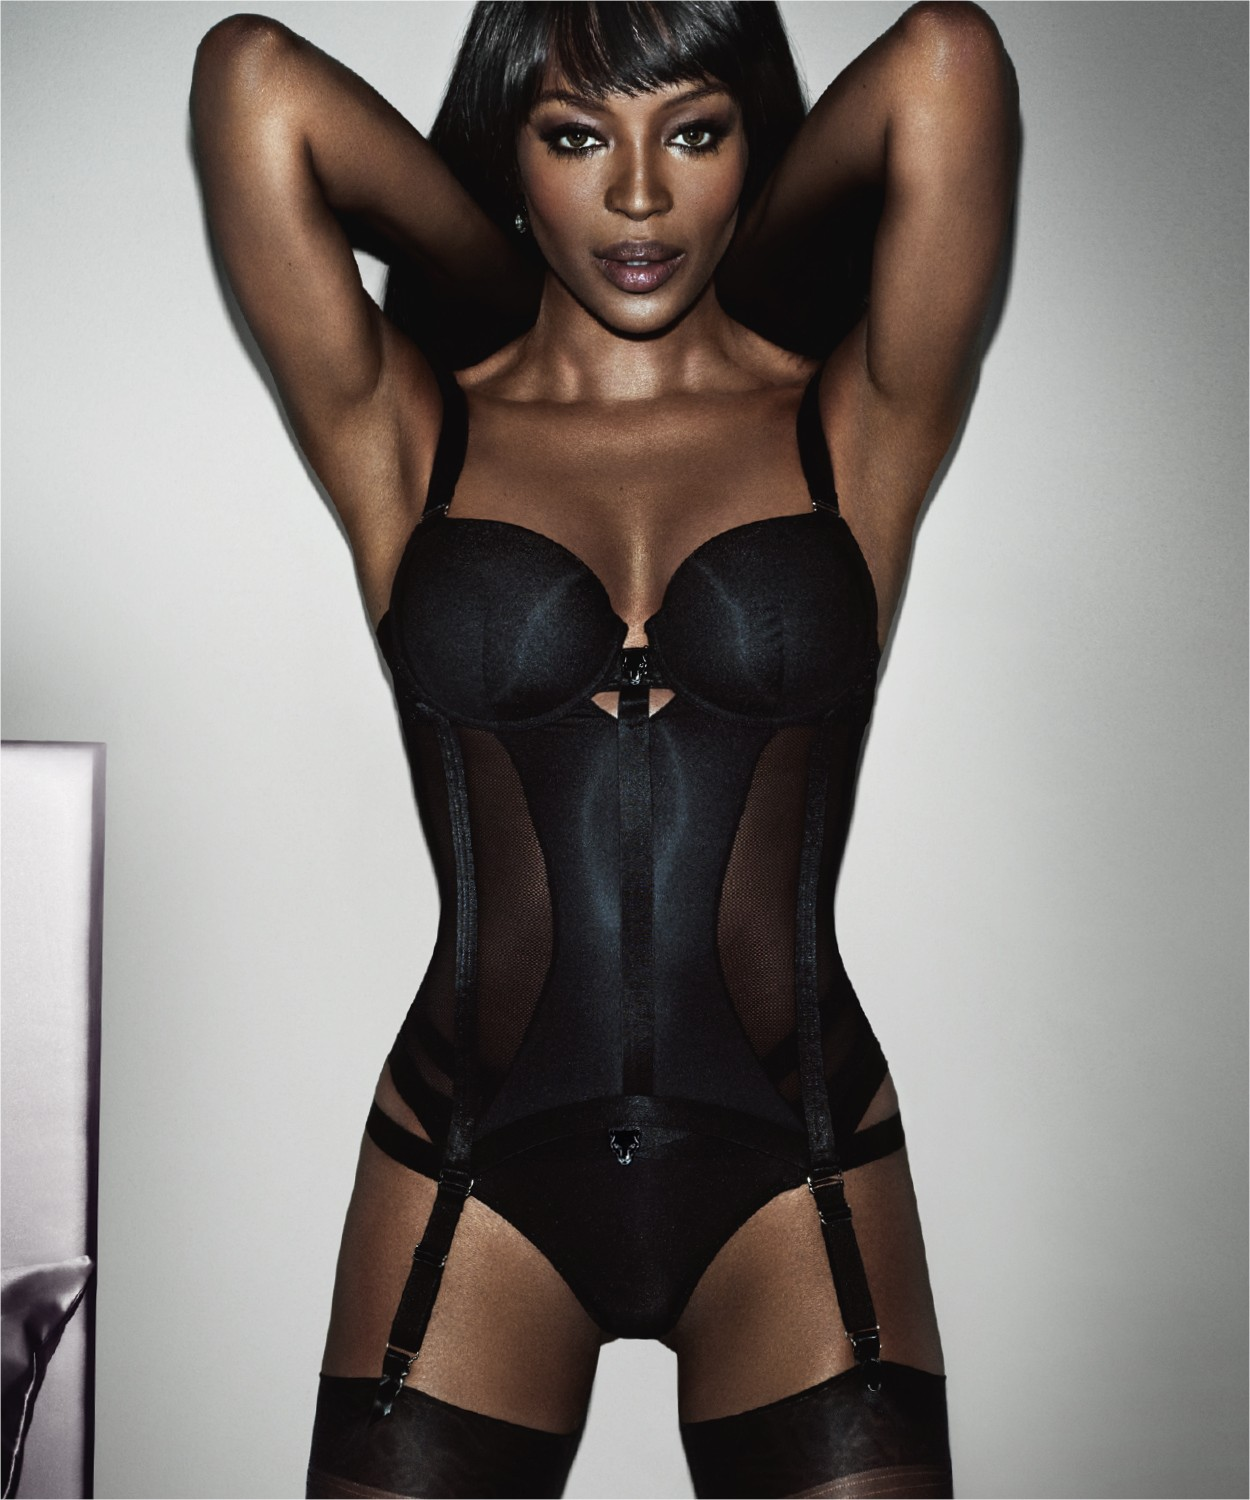 MIKE KAGEE FASHION BLOG : NAOMI CAMPBELL THE ULTIMATE ...